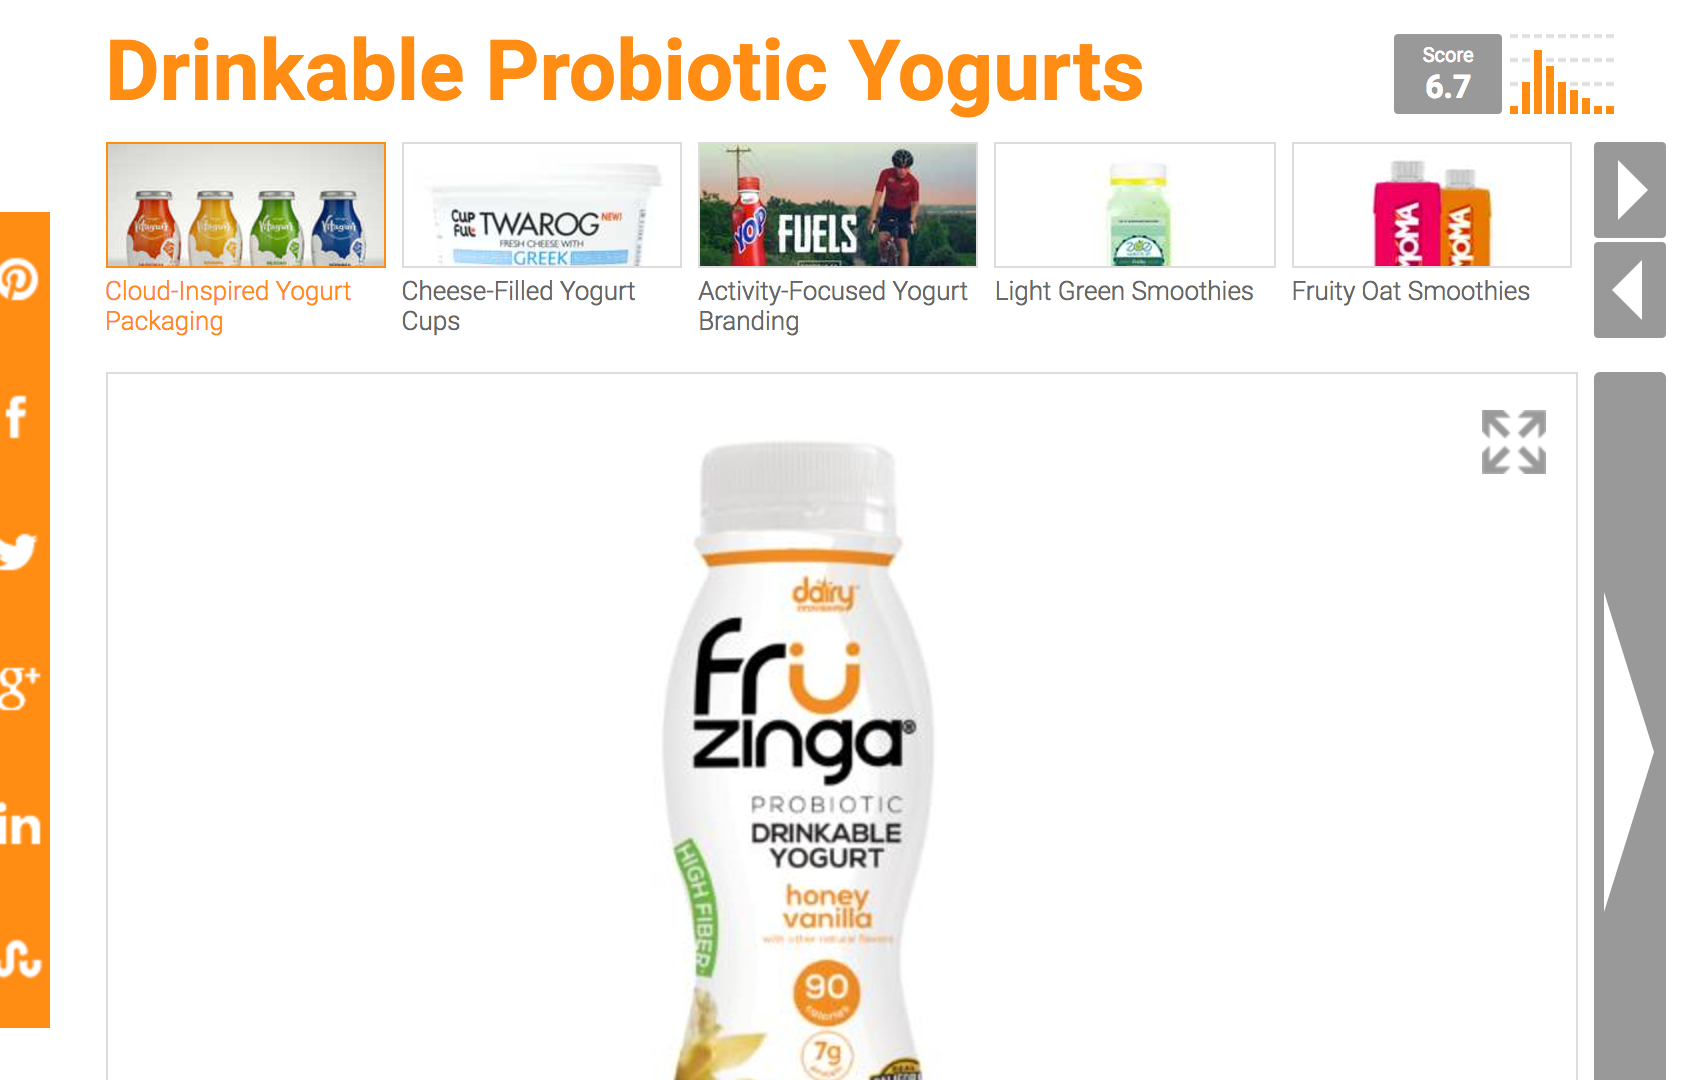 Drinkable Probiotic Yogurts.